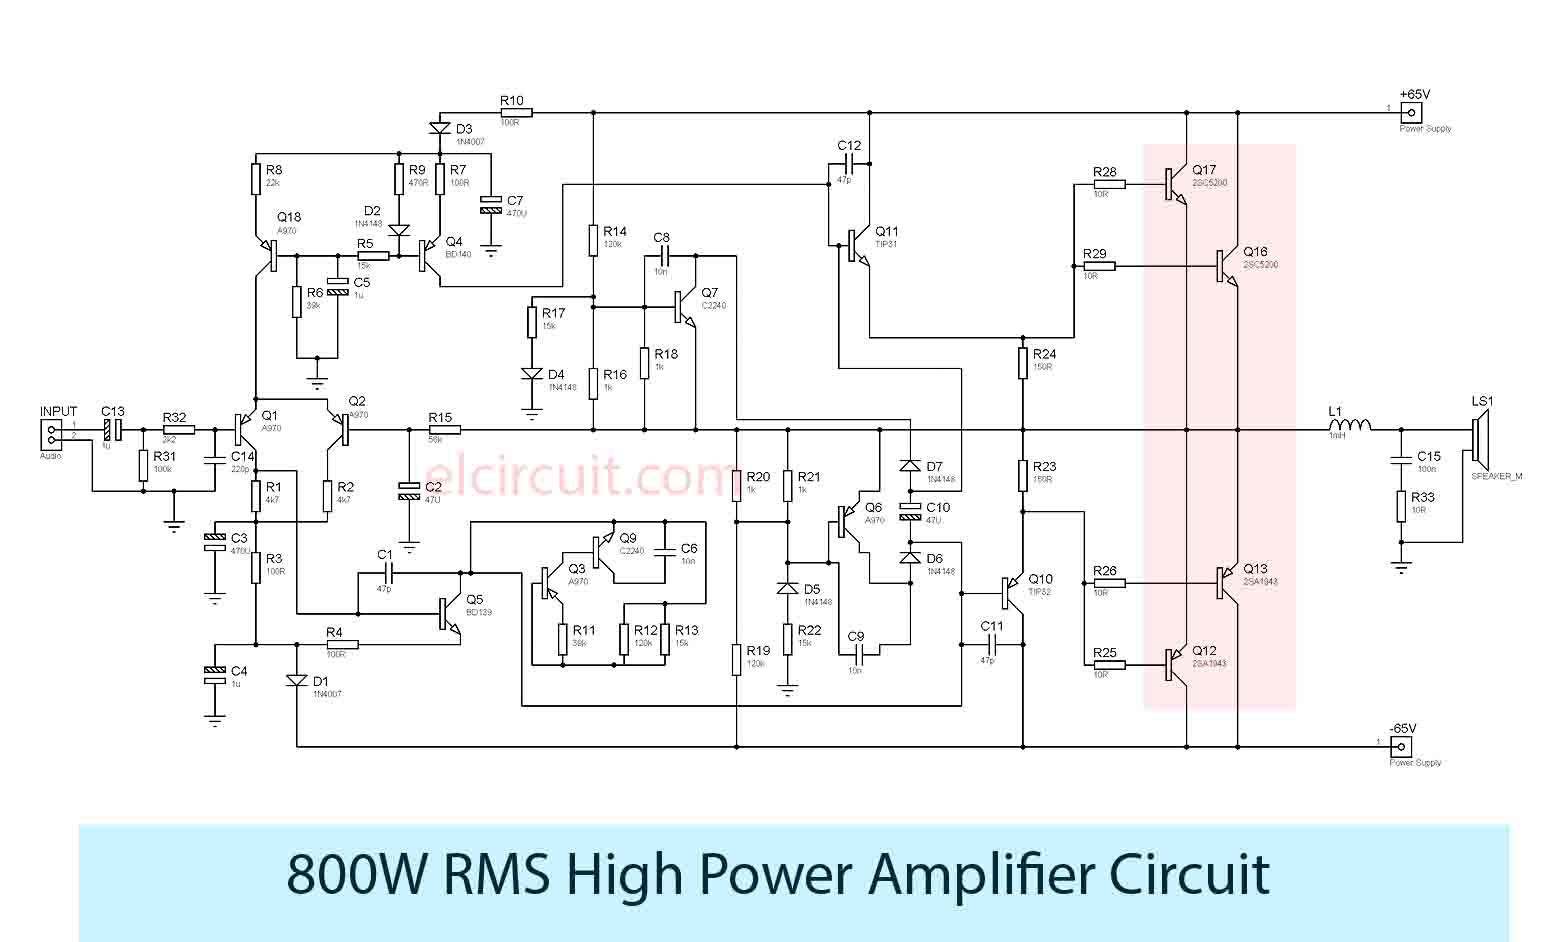 schematic diagram 800w high power amplifier [ 1555 x 942 Pixel ]